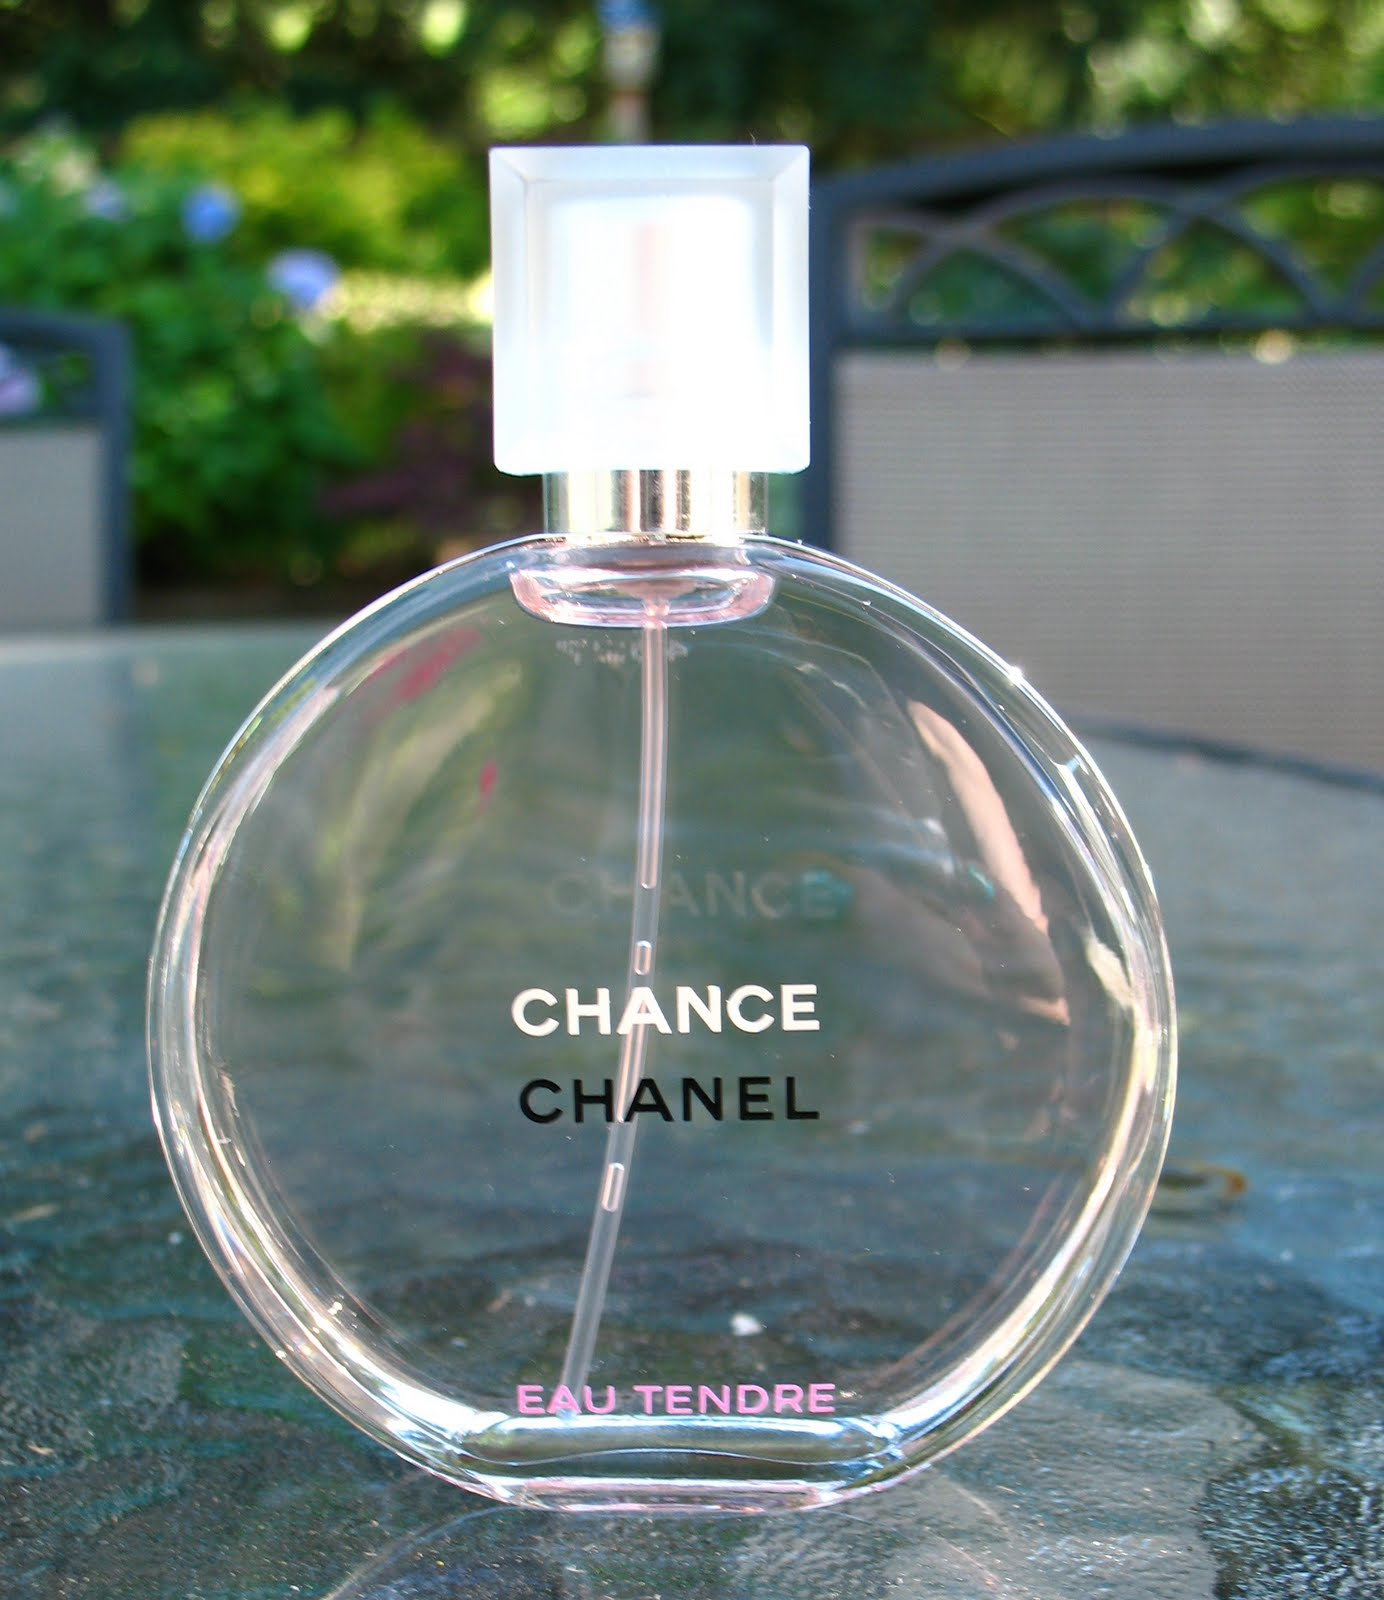 beyond just beauty chanel chance eau tendre review and pictures. Black Bedroom Furniture Sets. Home Design Ideas